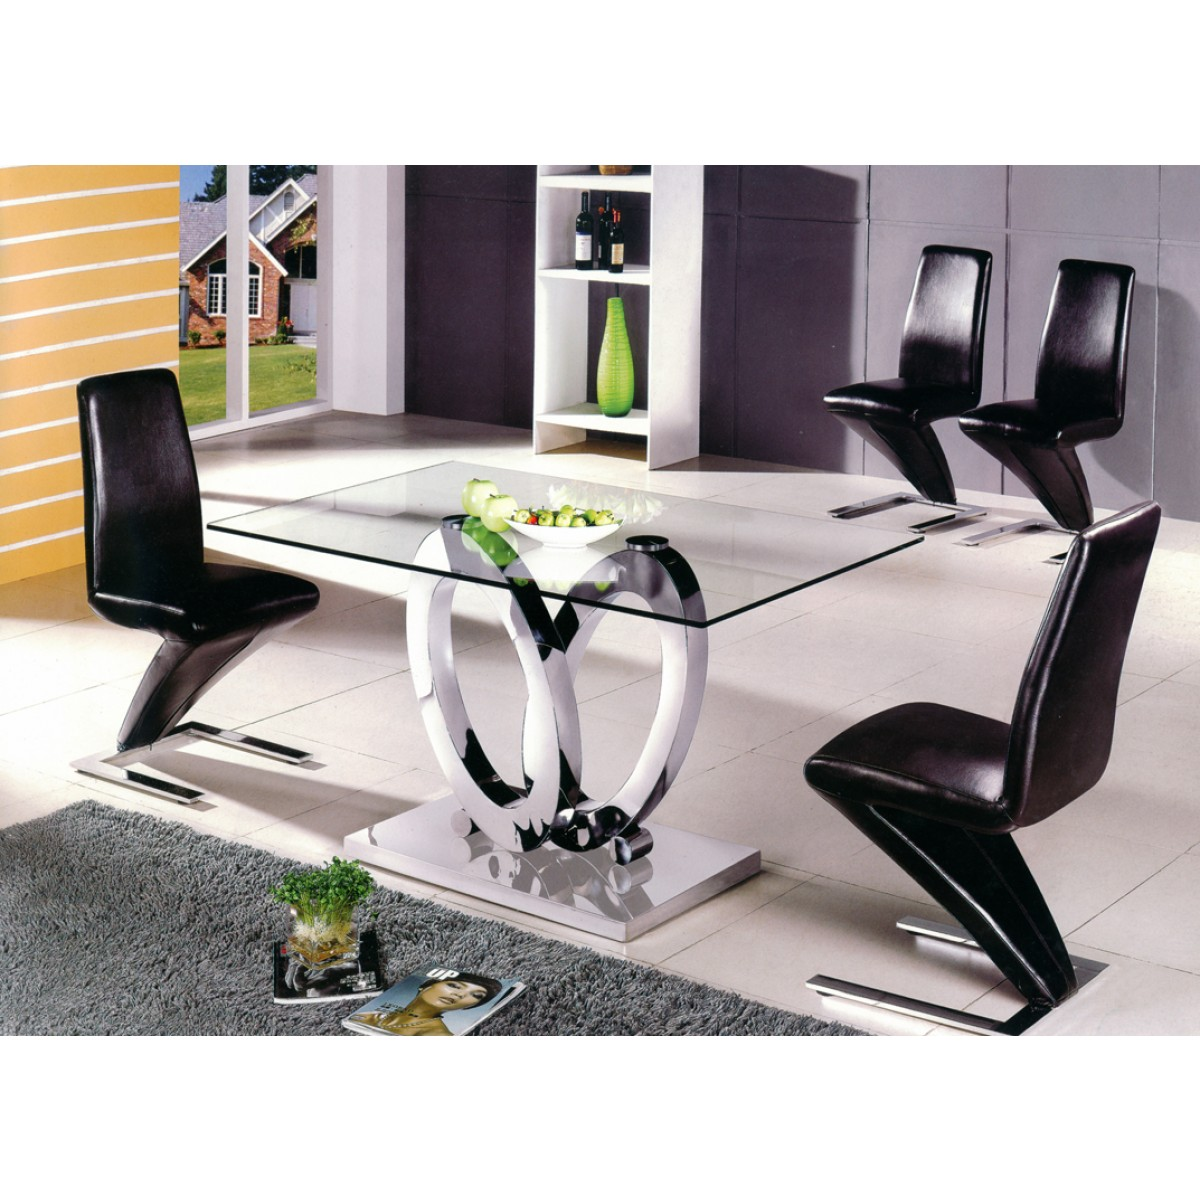 Table manger design ellipse taille au choix tables for Table de salle a manger nexus